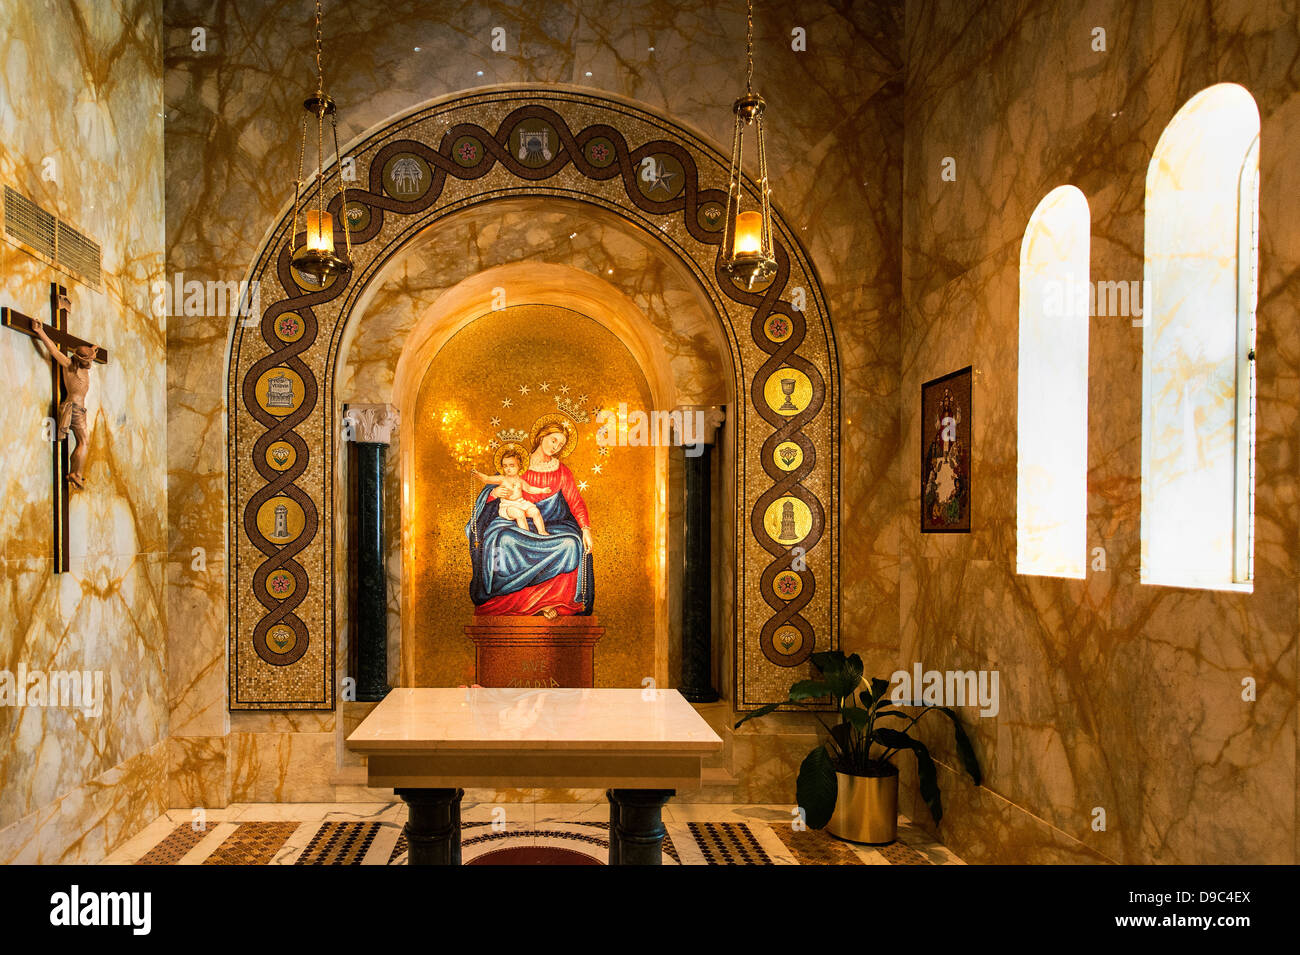 Our Lady of Pompei chapel, Basilica of the National Shrine of the Immaculate Conception, Washington, DC, USA - Stock Image